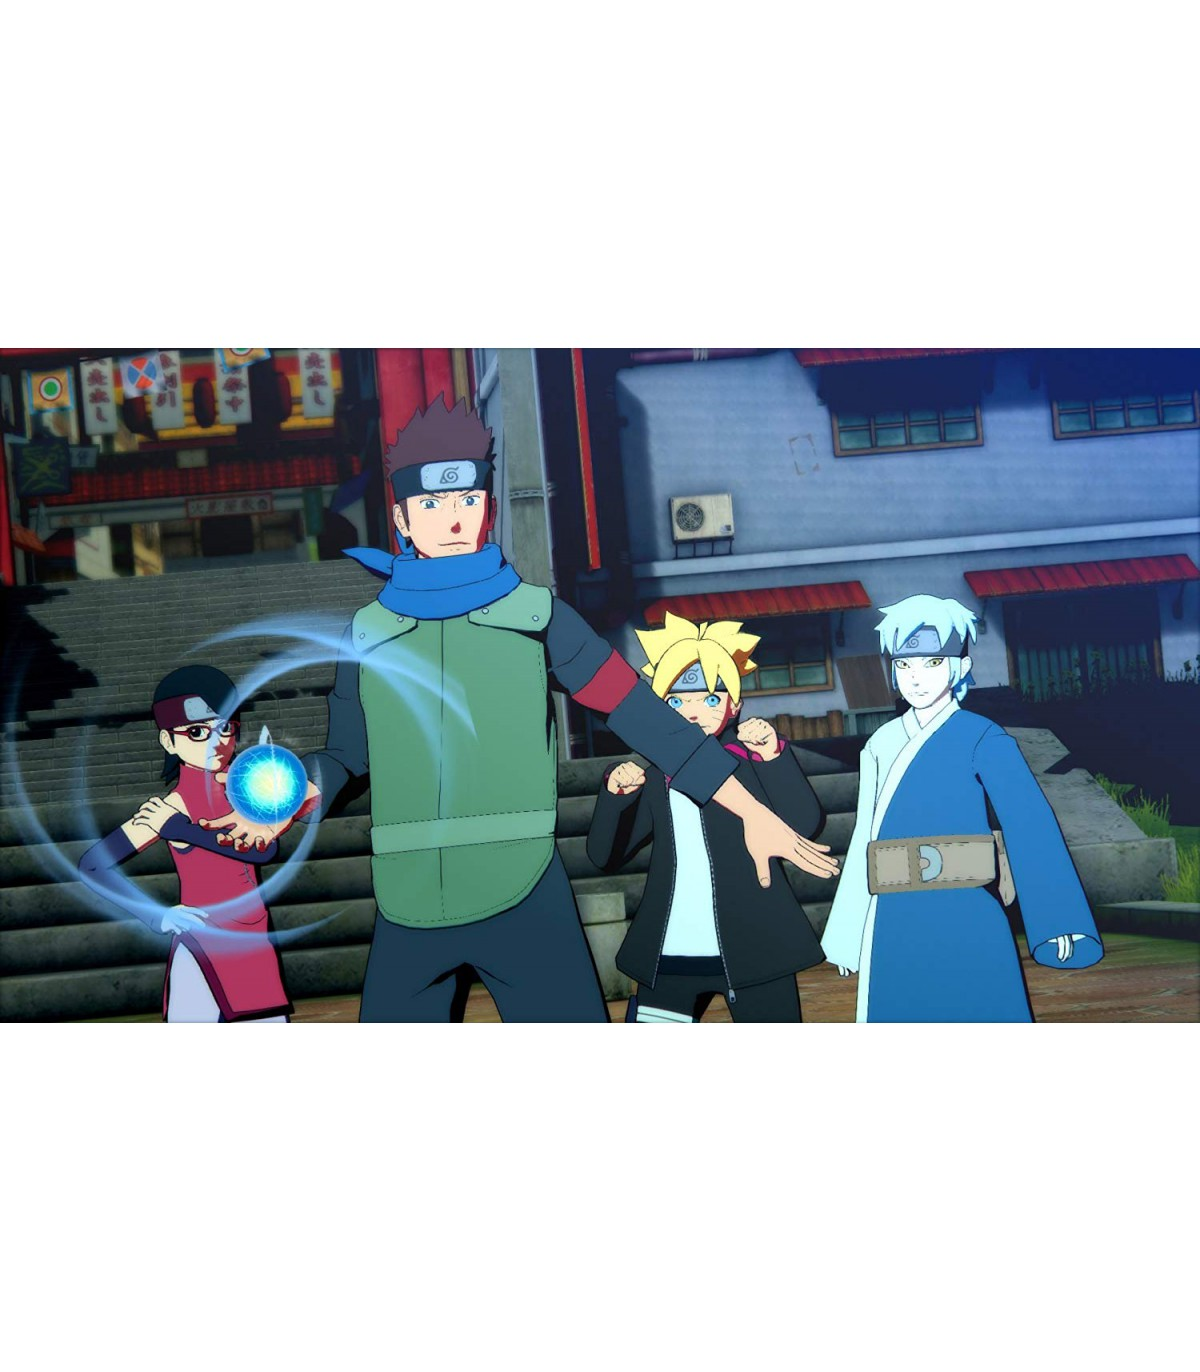 بازی Naruto Shippuden: Ultimate Ninja Storm 4 Road to Boruto کارکرده - پلی استیشن 4